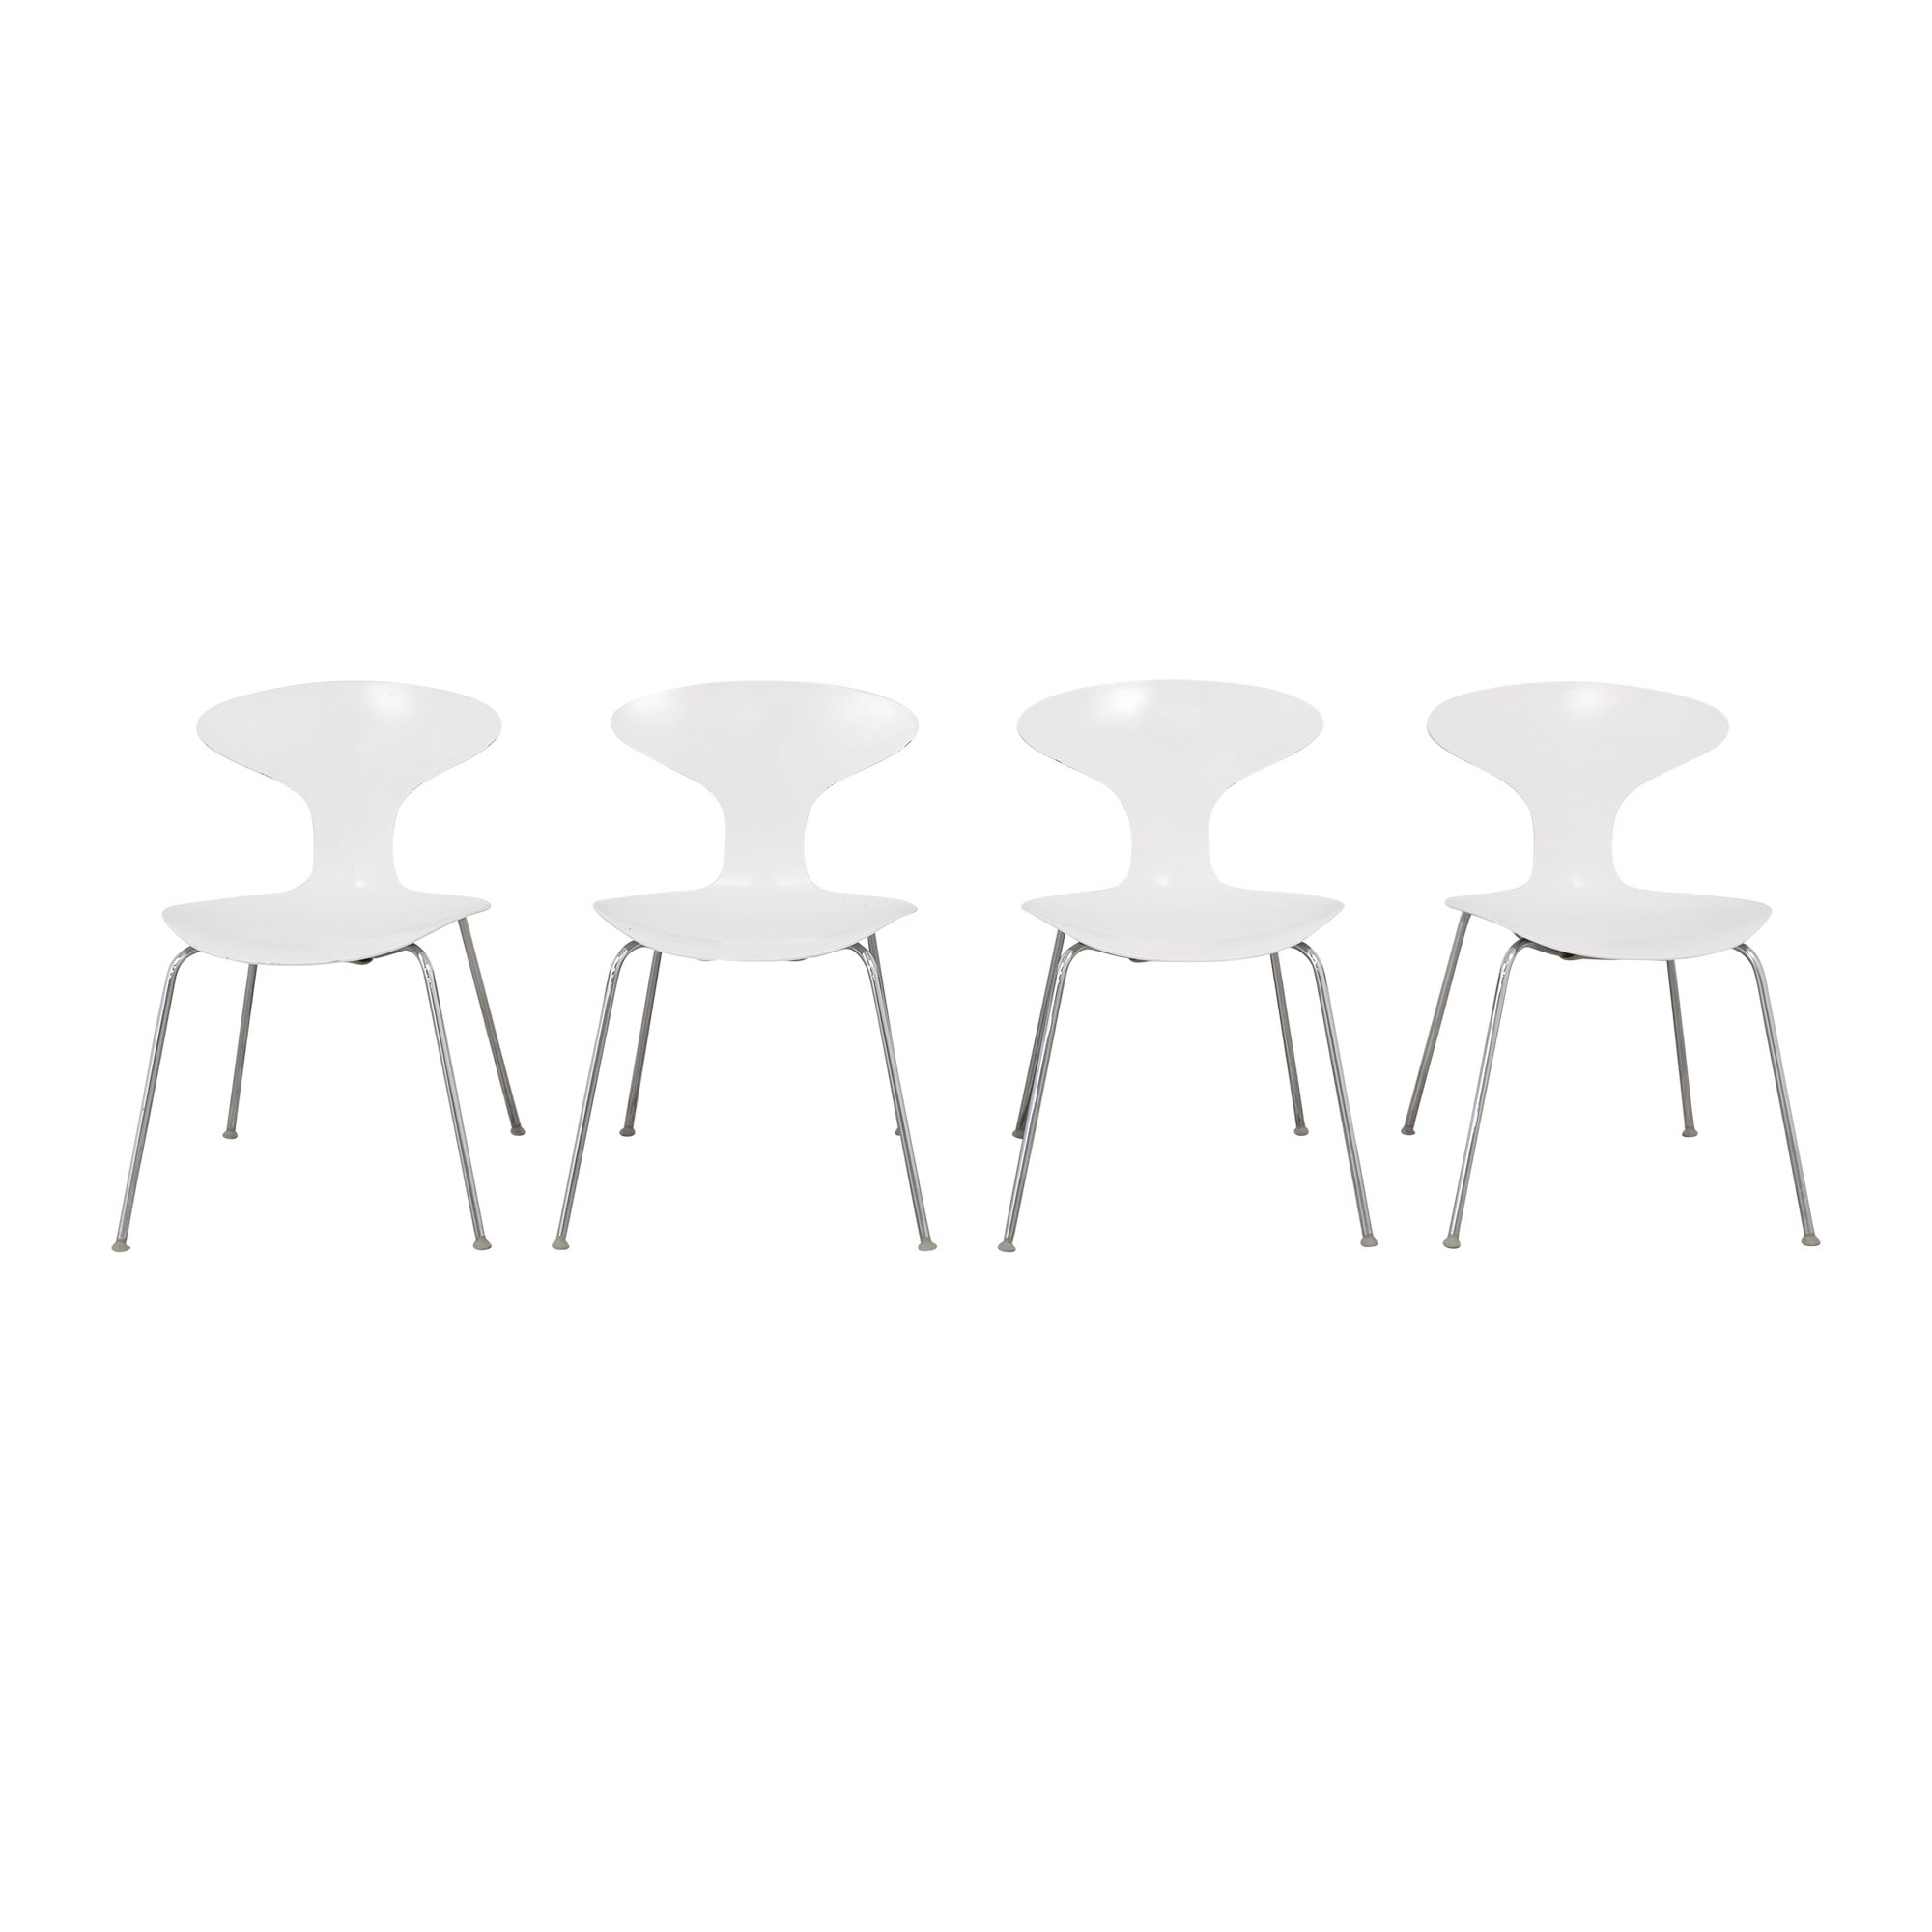 Bernhardt Bernhardt Orbit Stacking Chairs white